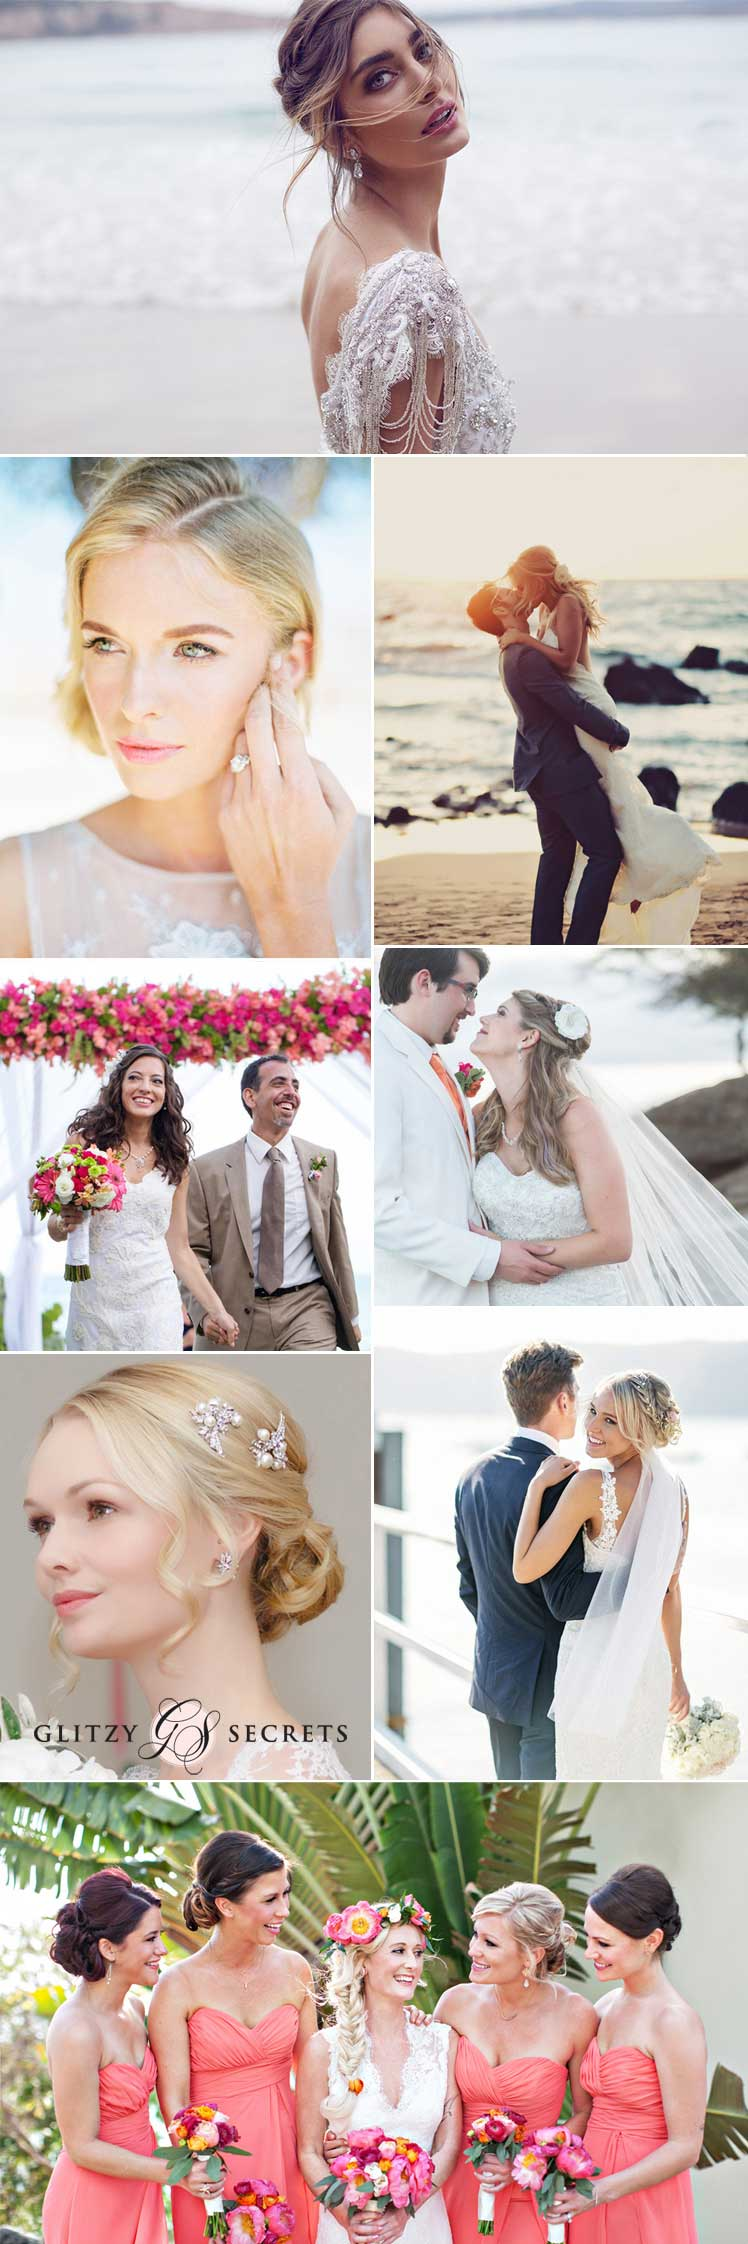 beautiful hair and makeup ideas for a destination wedding